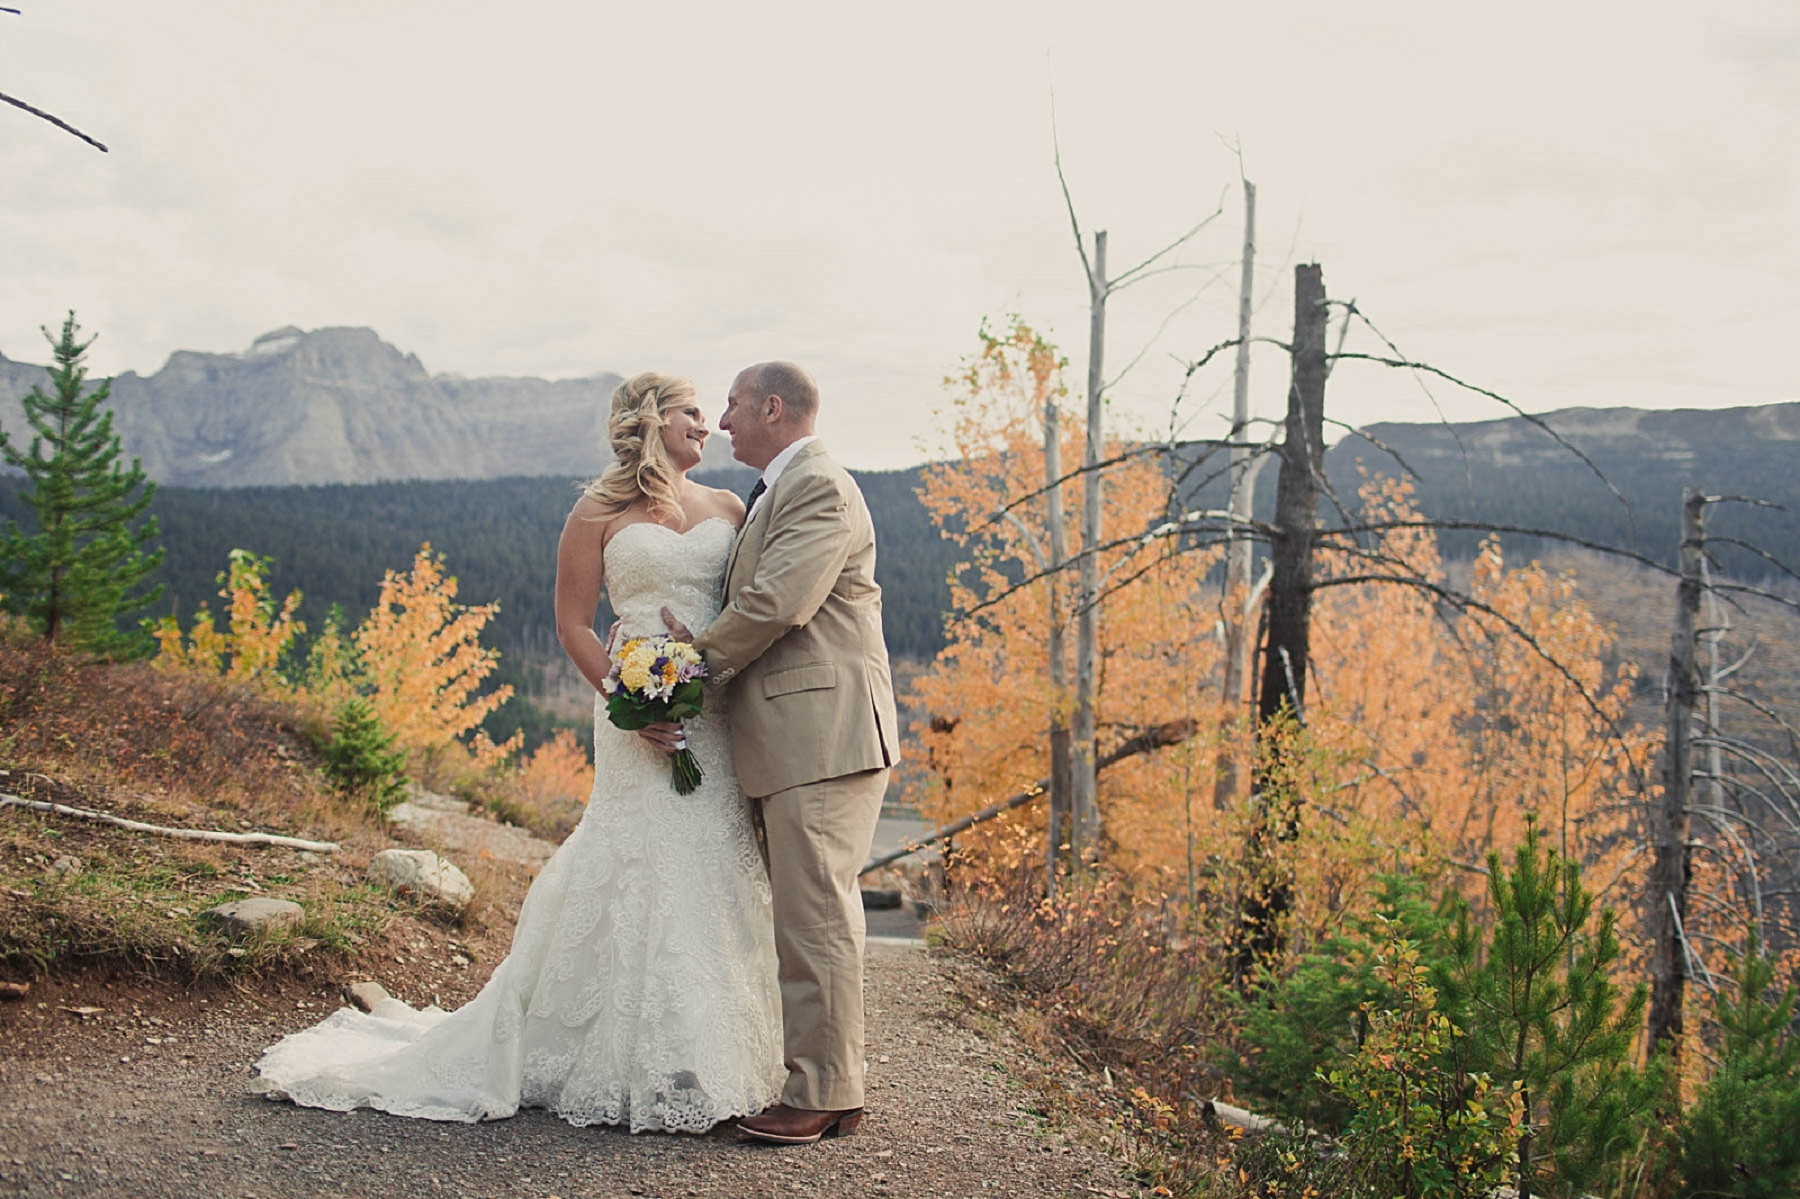 Jennifer_Mooney_photo_day_after_session_glacier_park_elegant_wedding_bride_groom_destination_-26.jpg